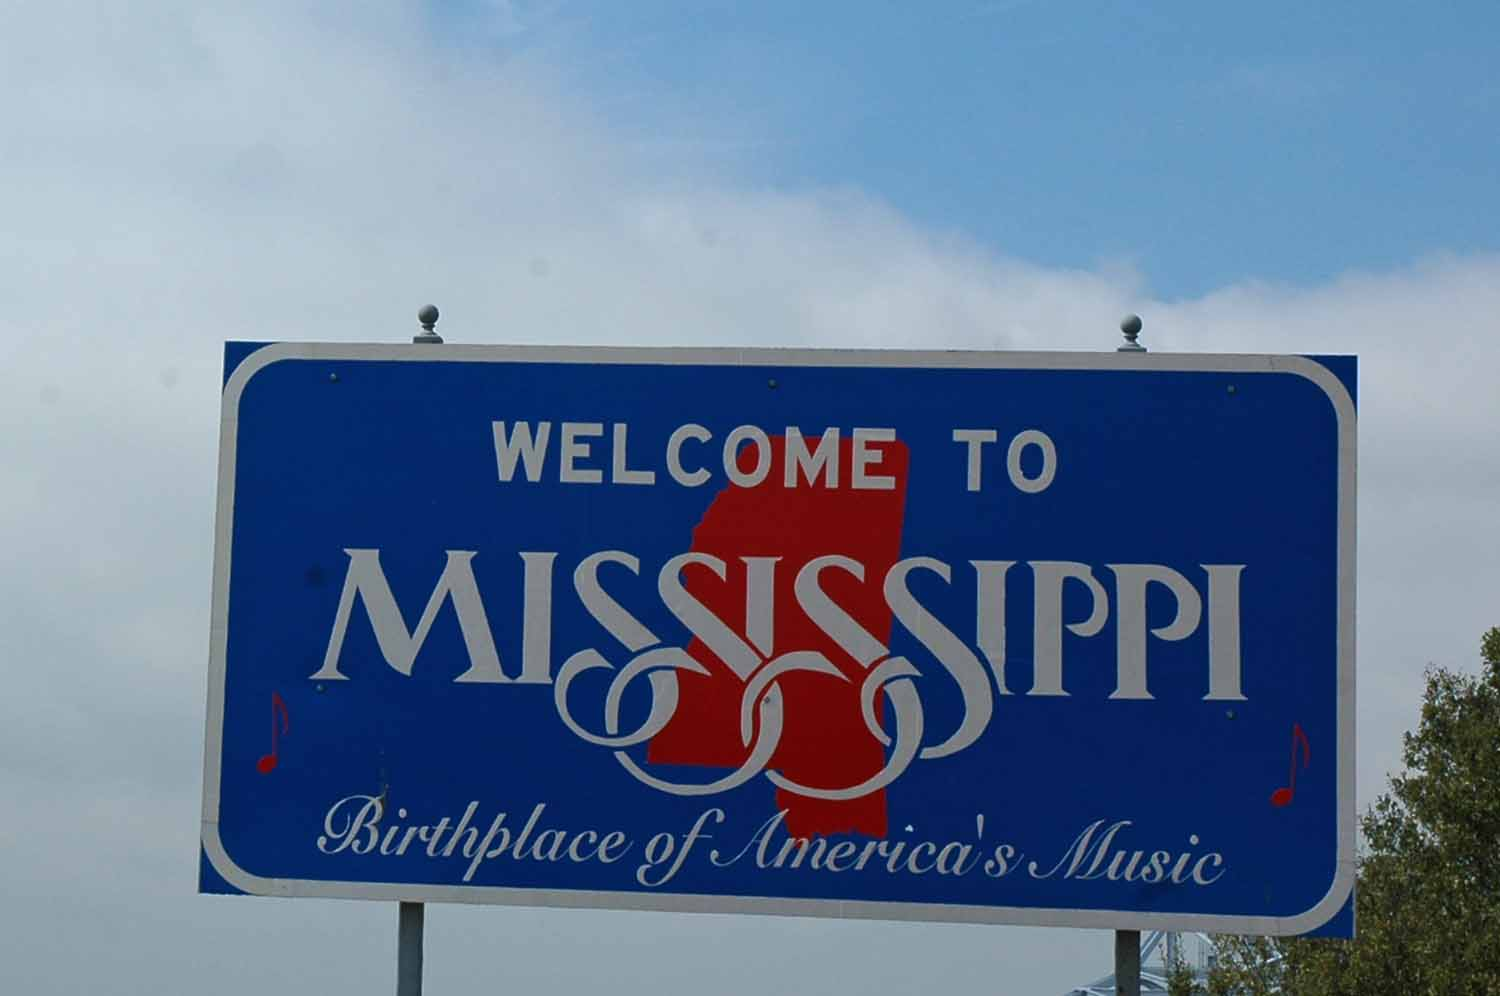 Moving on to Mississippi